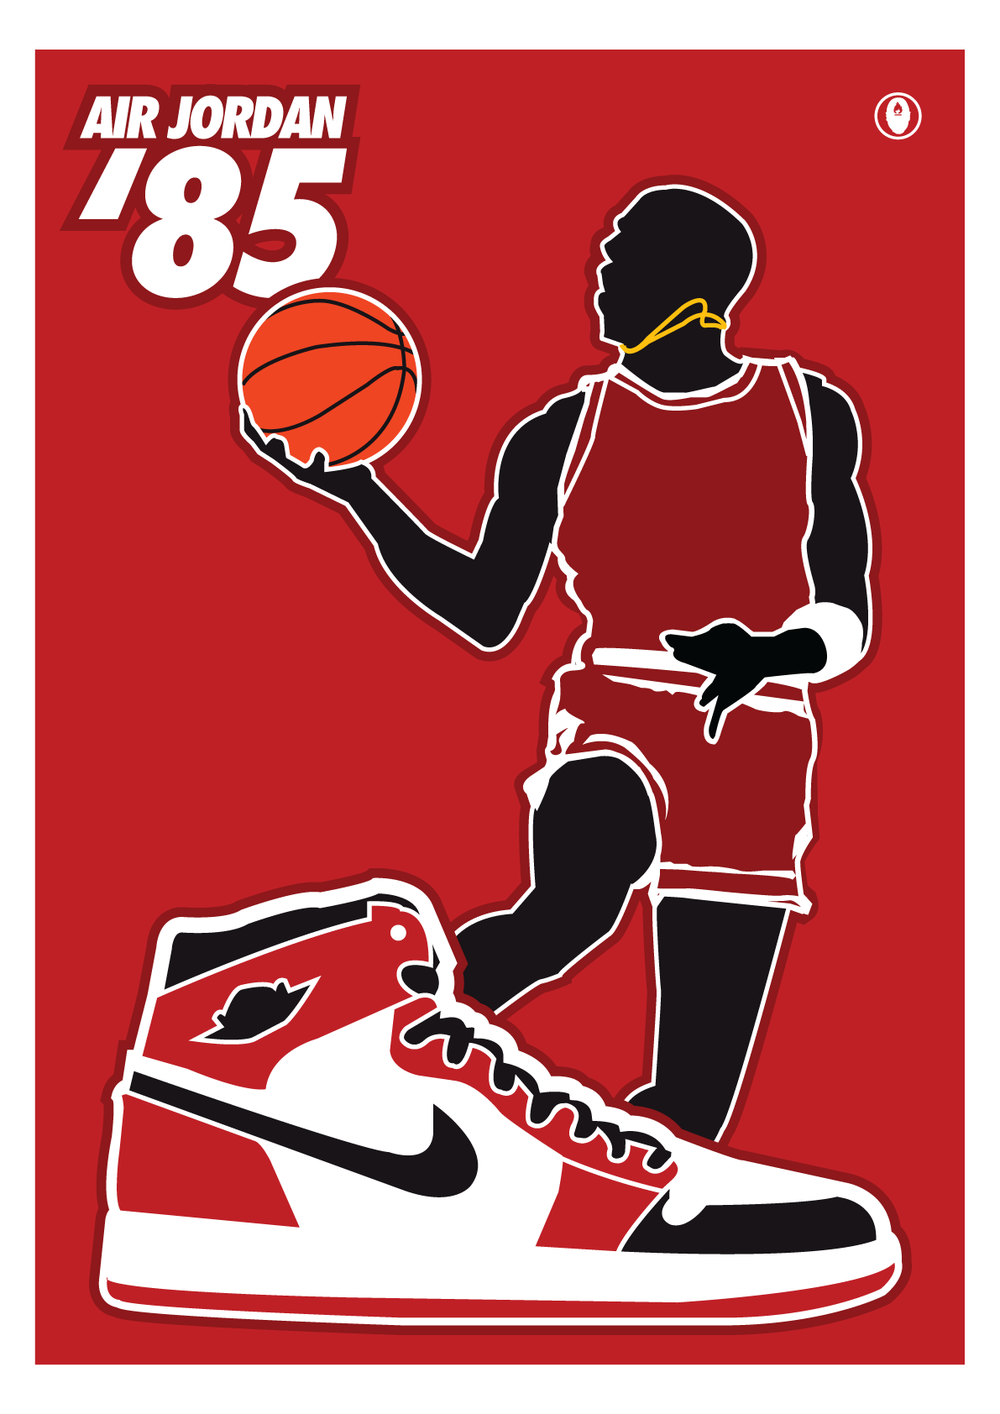 Image of AIR JORDAN '85